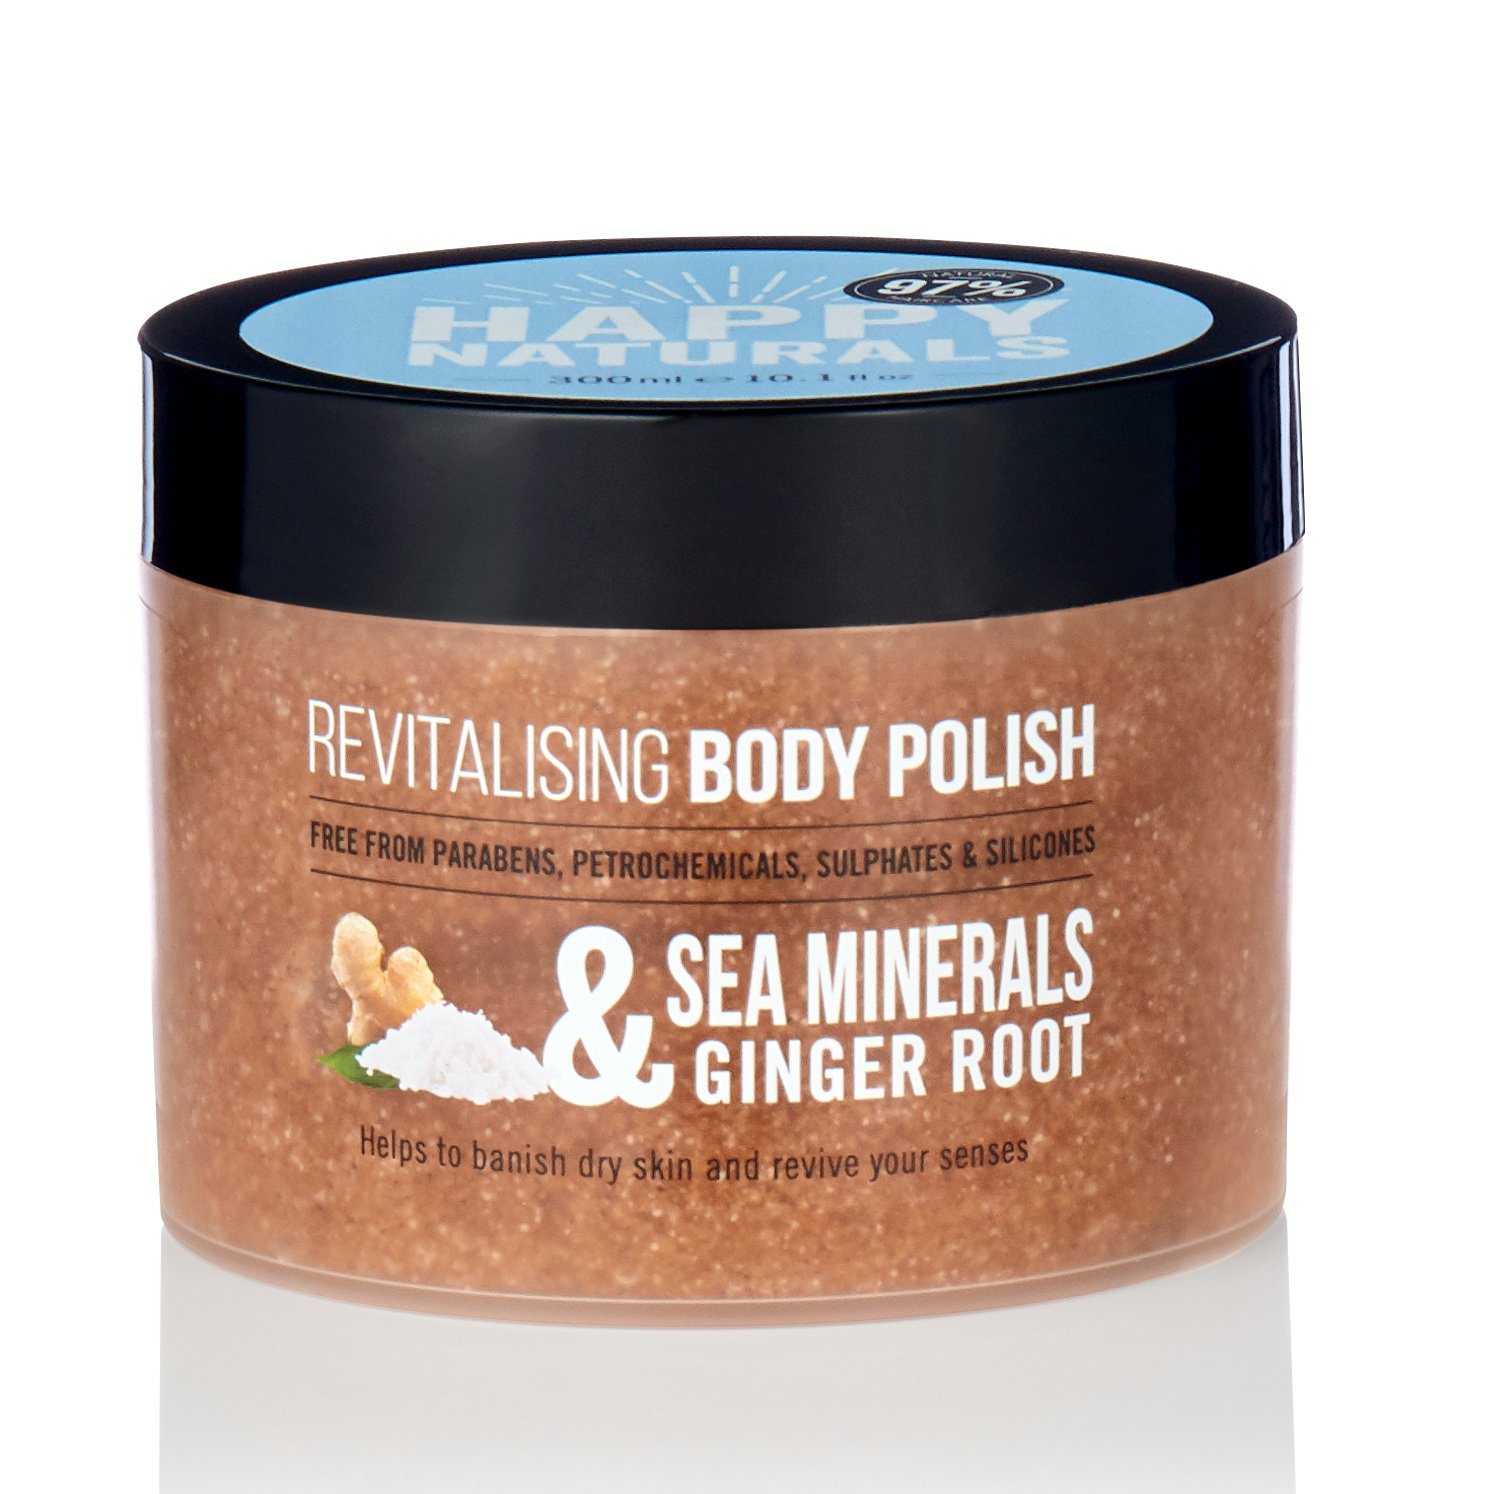 Happy Naturals Sea Mineras & Ginger Root Revitalising Body Polish Απαλή Απολέπιση Σώματος με Ginger 300ml